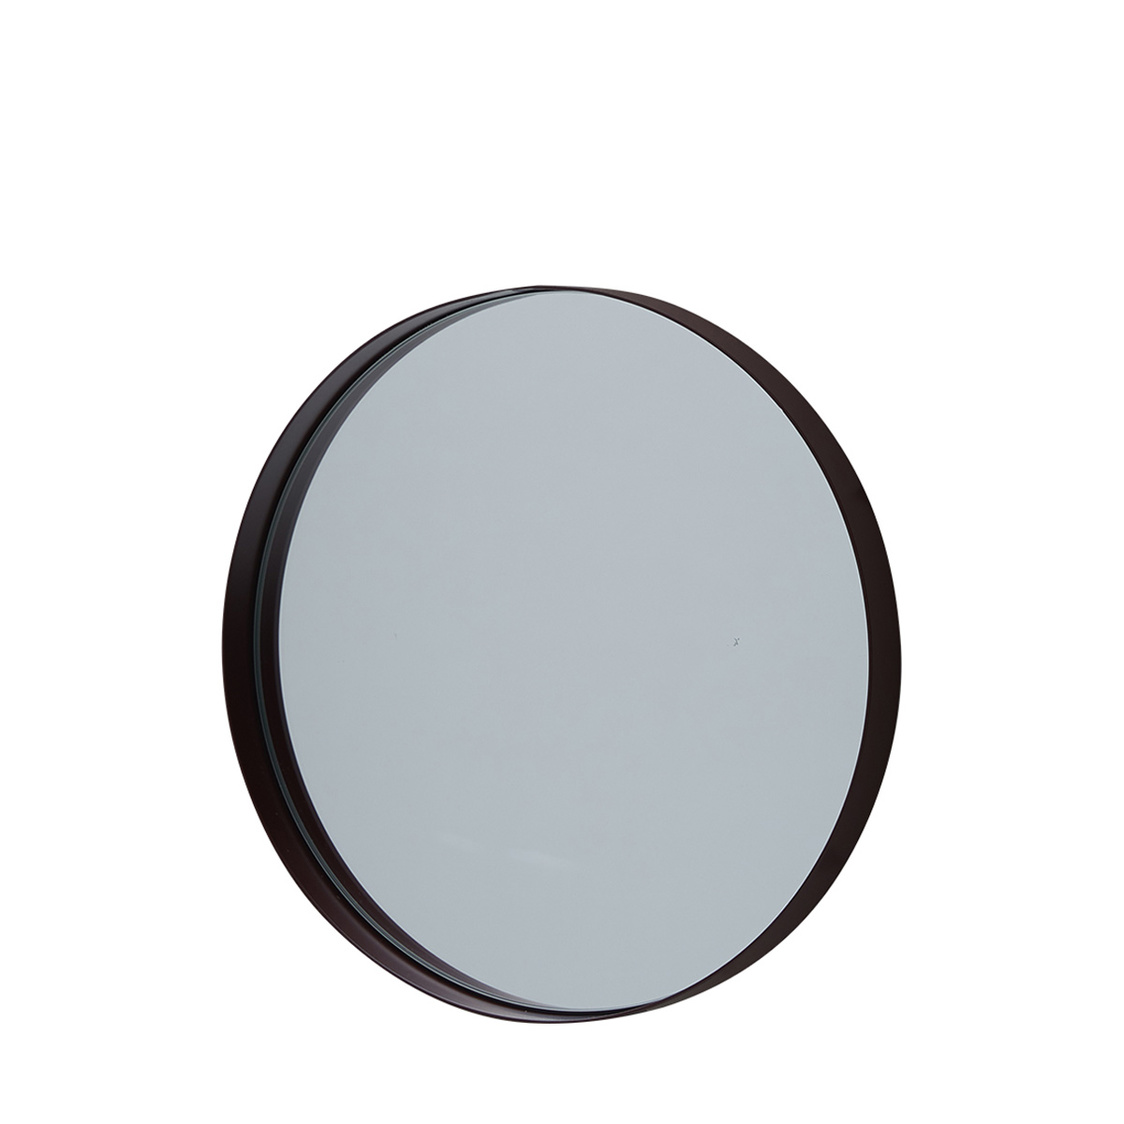 Iloom GLEN STUDIO Round Mirror  HSAA0203-BUR